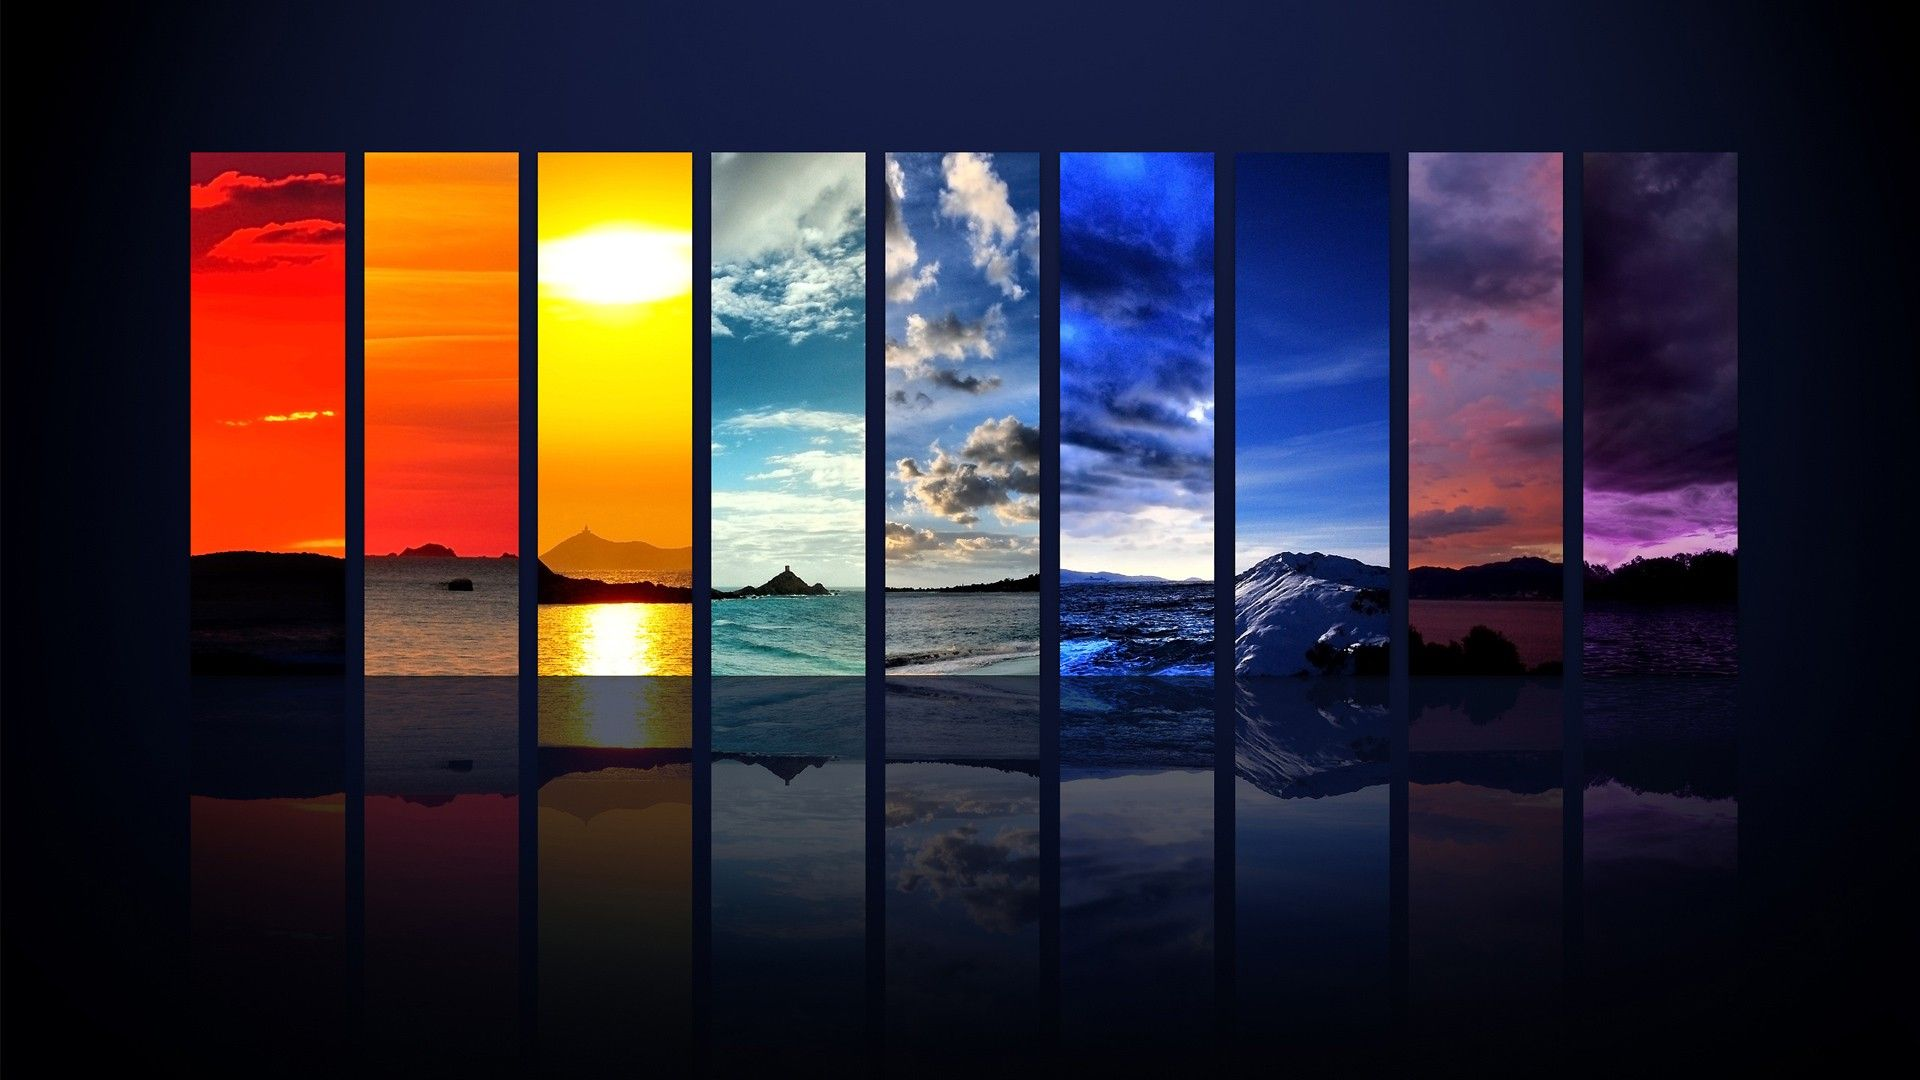 Cool Desktop Backgrounds Hd Wallpaper Of Hdwallpaper2013com